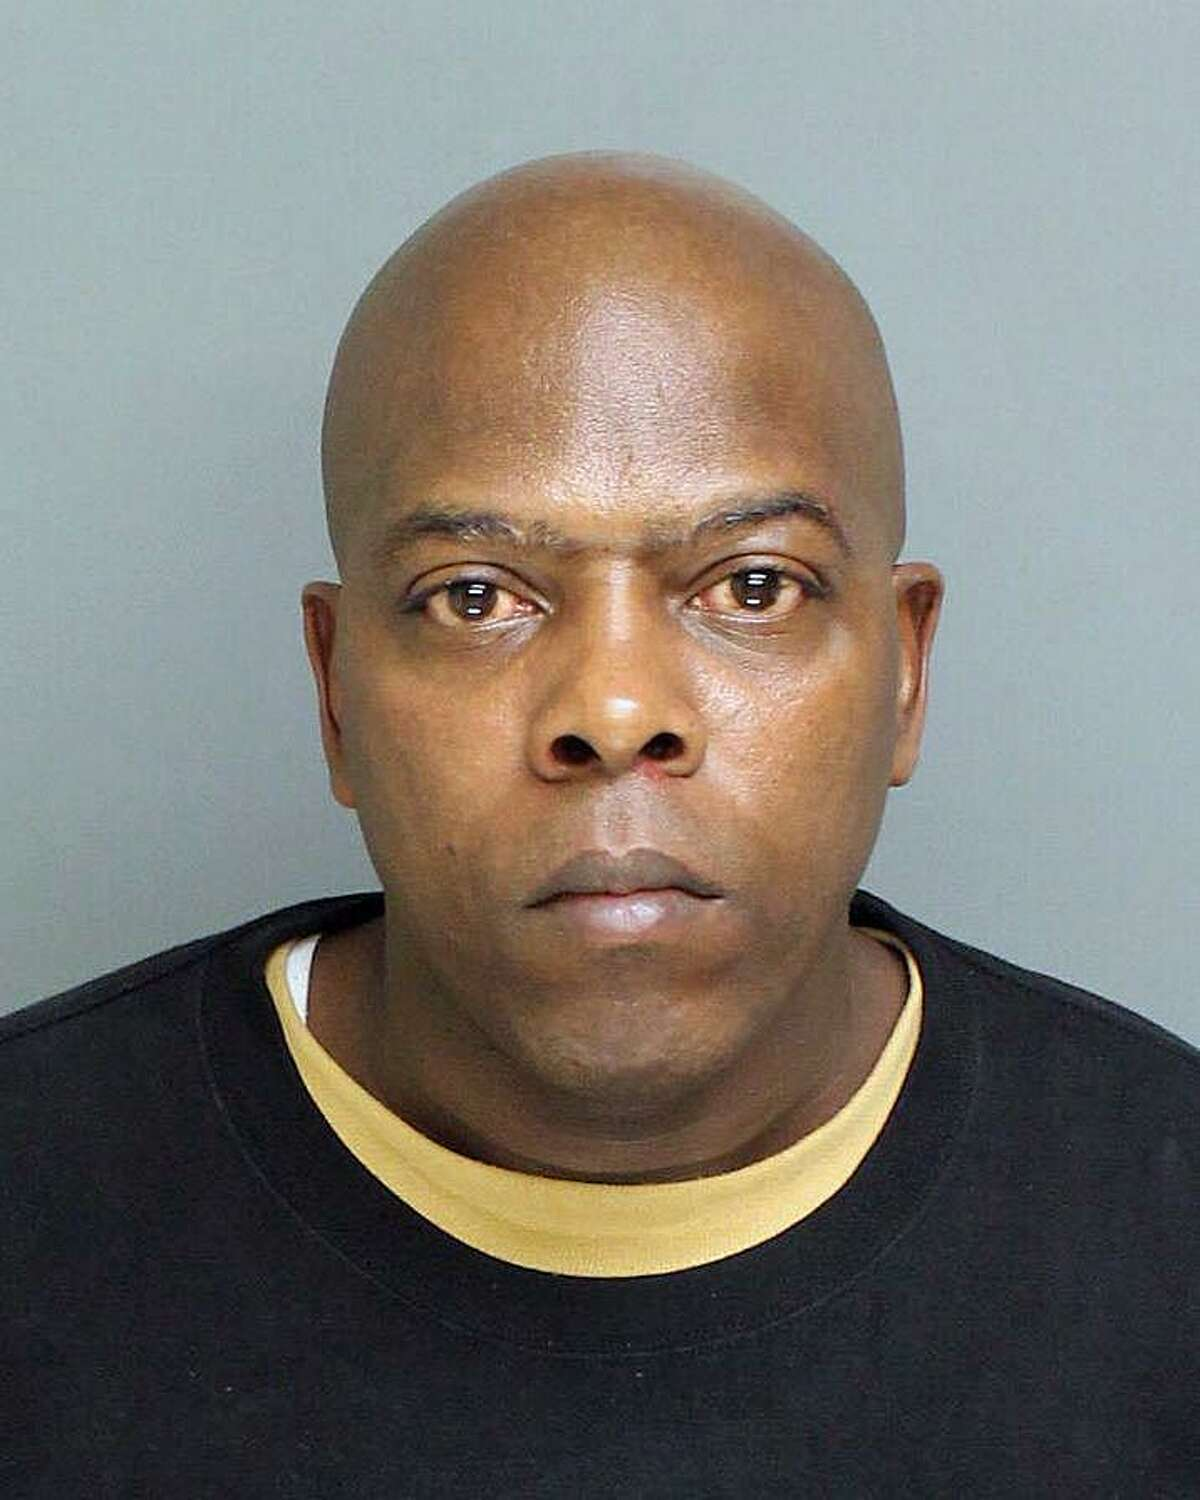 Kenyon Gay, 41, of Bridgeport and West Haven, was charged with murder, possession of a dangerous weapon and second-degree assault. His bond was set at $1,000,000.